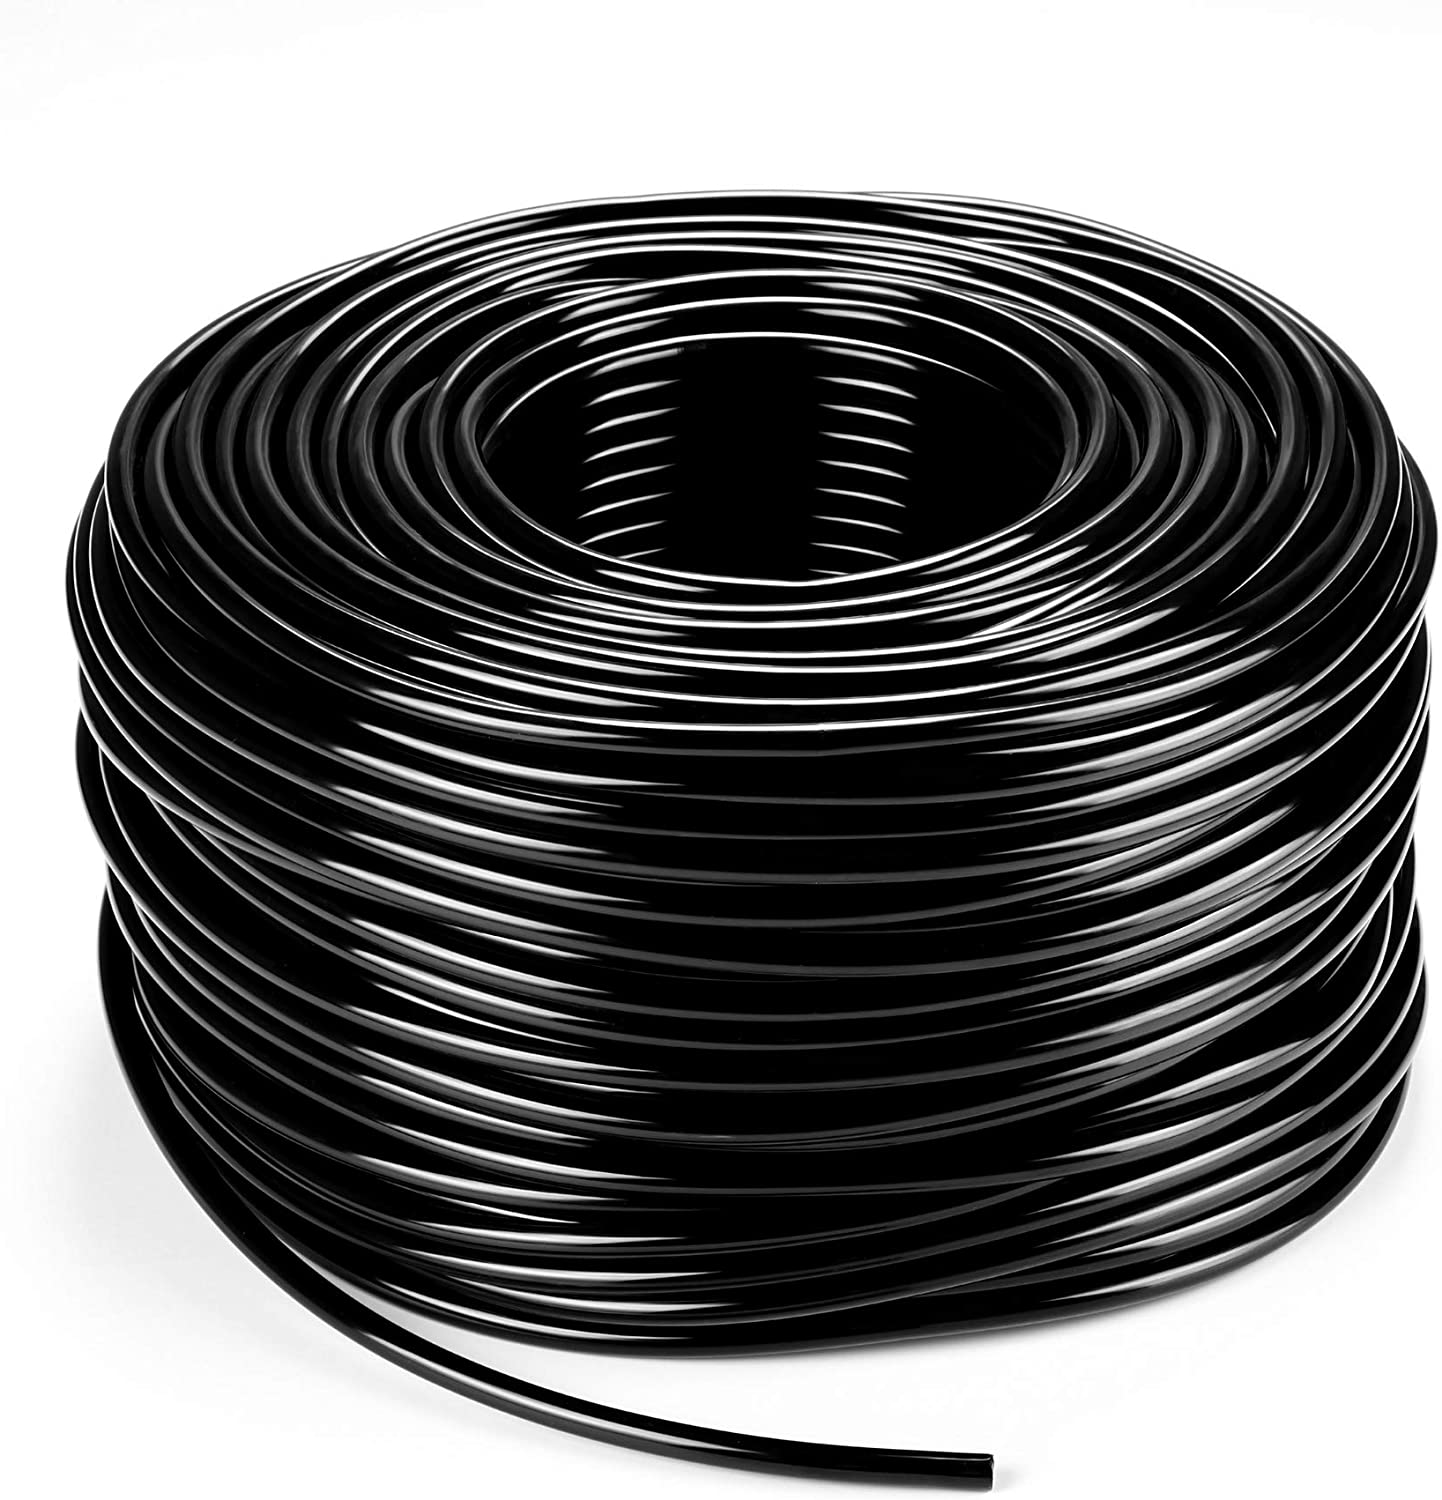 200ft 1/4 inch Blank Distribution Tubing Drip Irrigation Hose Garden Watering Tube Line for Small garden irrigation system